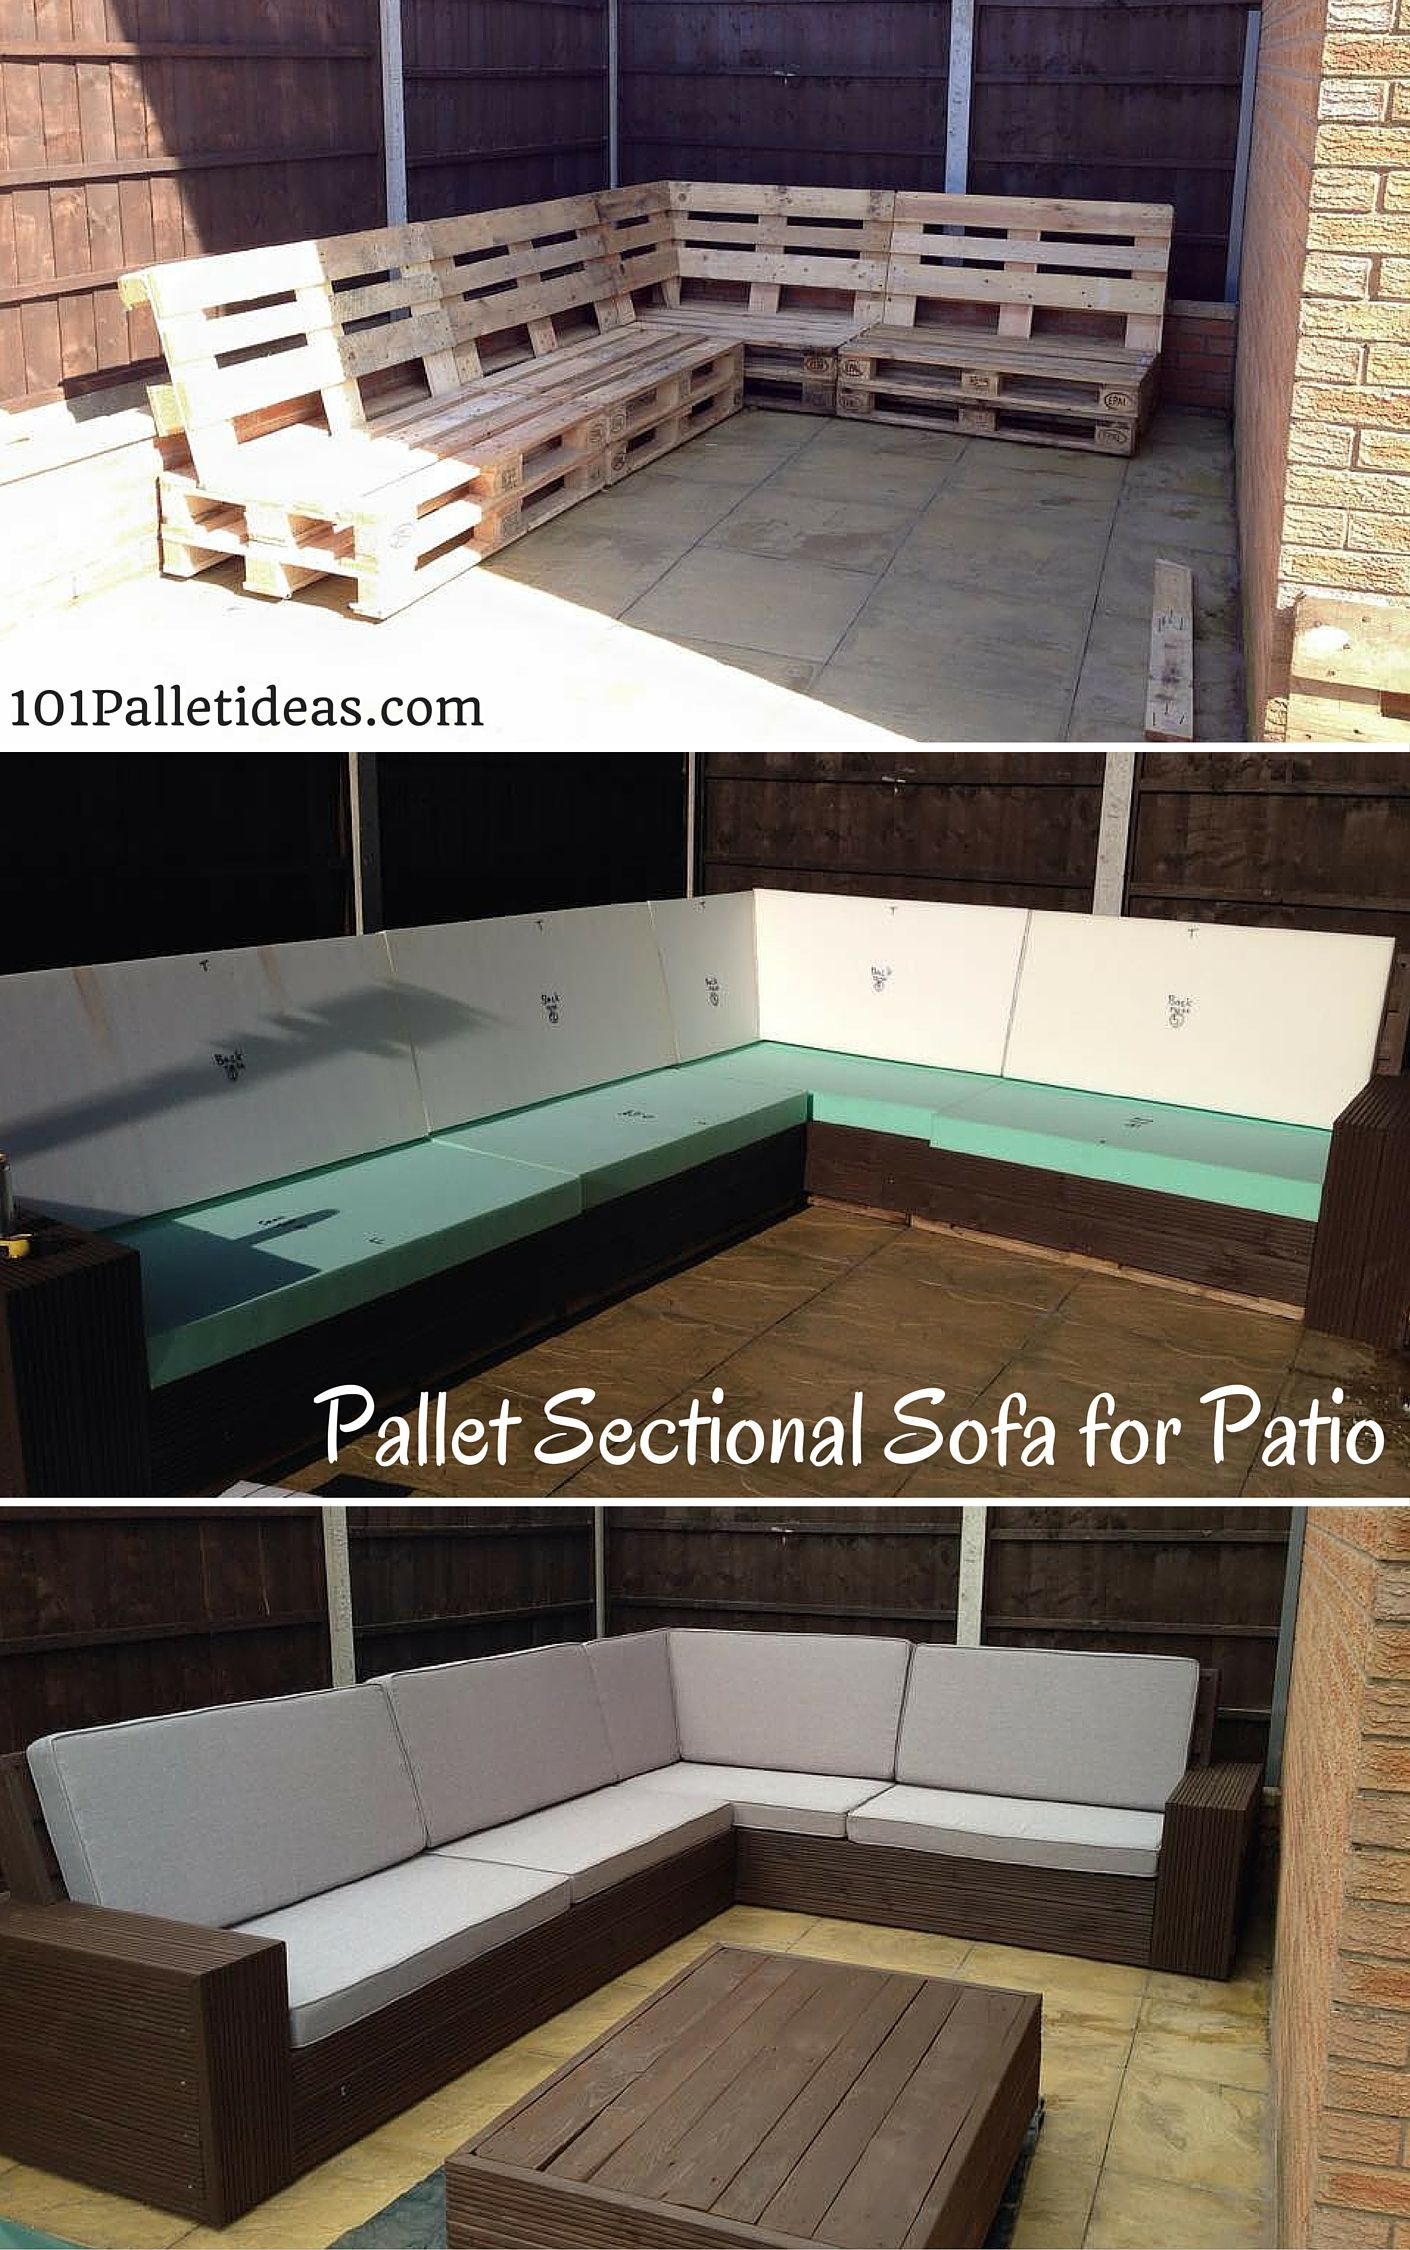 Muebles Jardin Palets Diy Pallet Sectional Sofa For Patio Self Installed 8 10 Seater